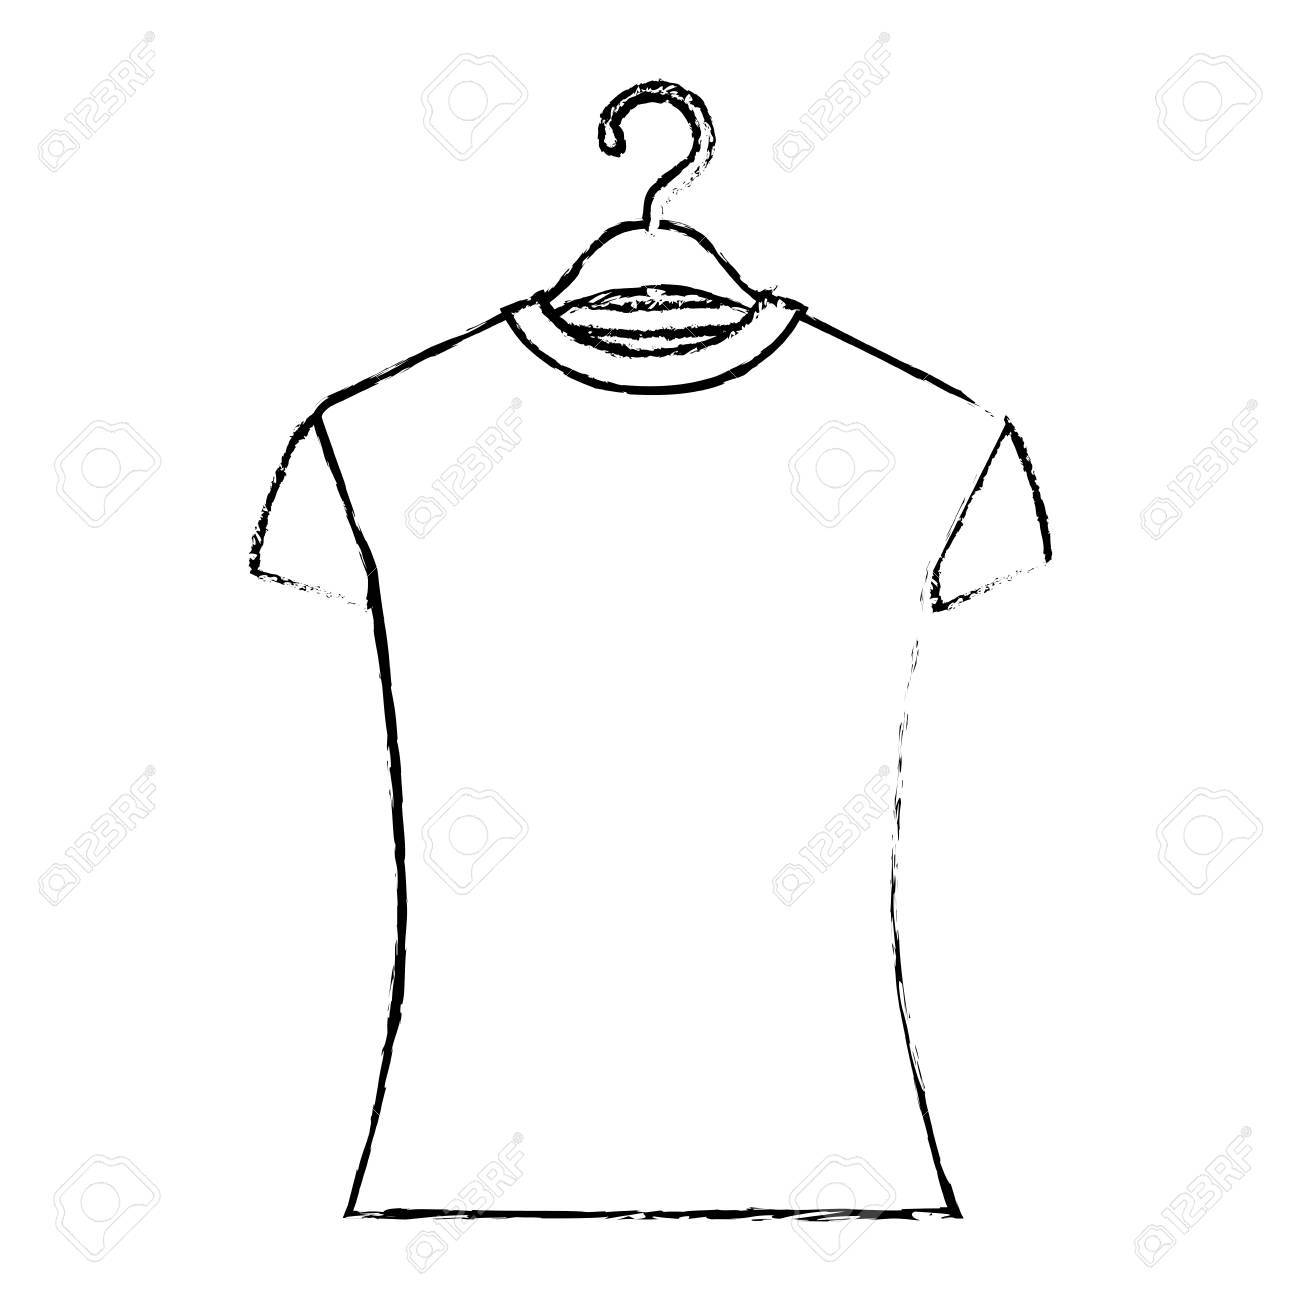 1300x1300 Monochrome Blurred Silhouette Of Woman T Shirt In Hanger. Royalty